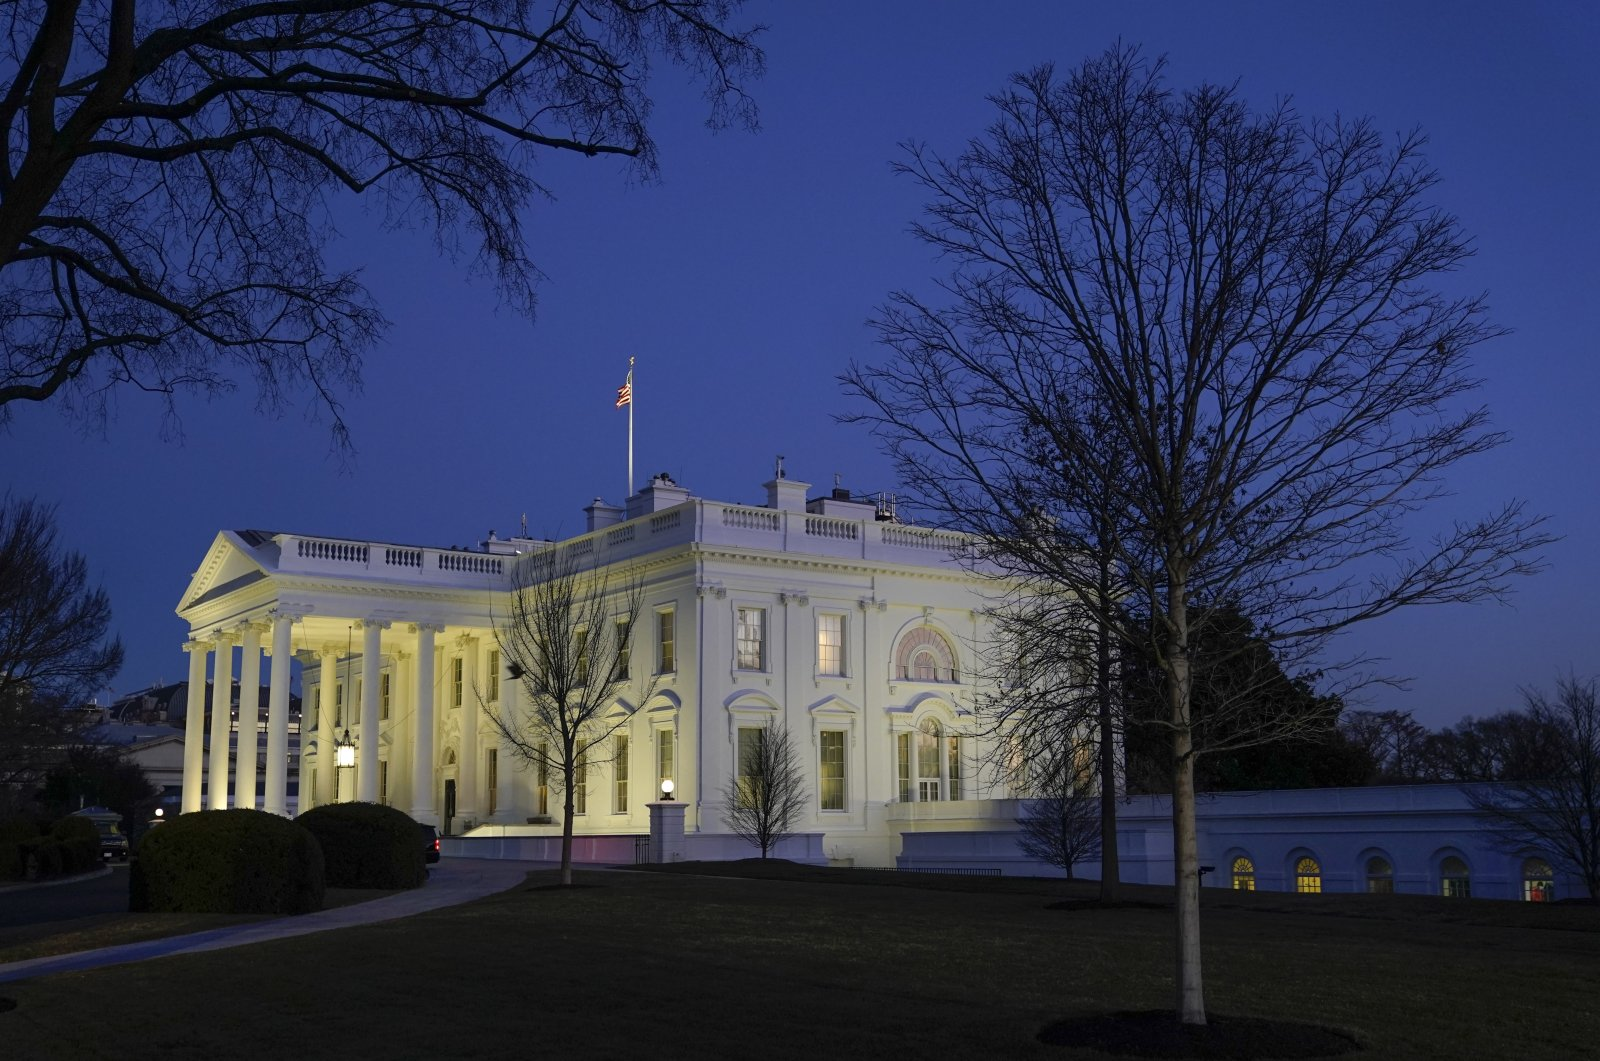 Dusk settles over the White House in Washington, D.C., U.S., Jan. 23, 2021. (AP Photo)